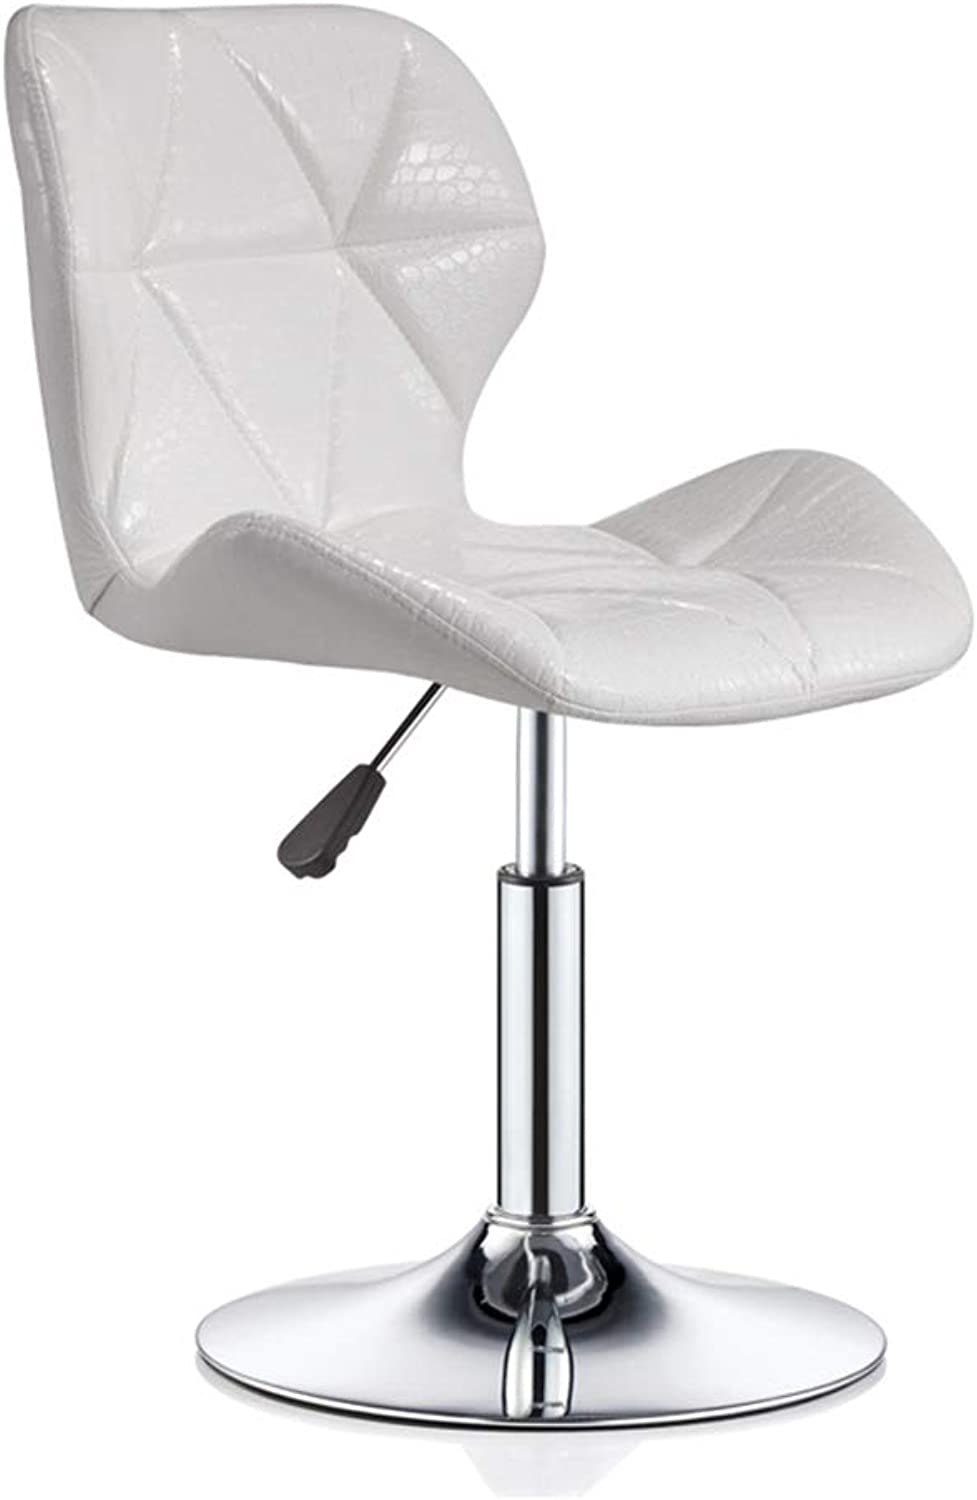 White Front Desk Chairs Office Chair Barstool 360 Degree redatable Bar Chair with Adjustable Height High Stool Artificial Leather Cushion (color    1)